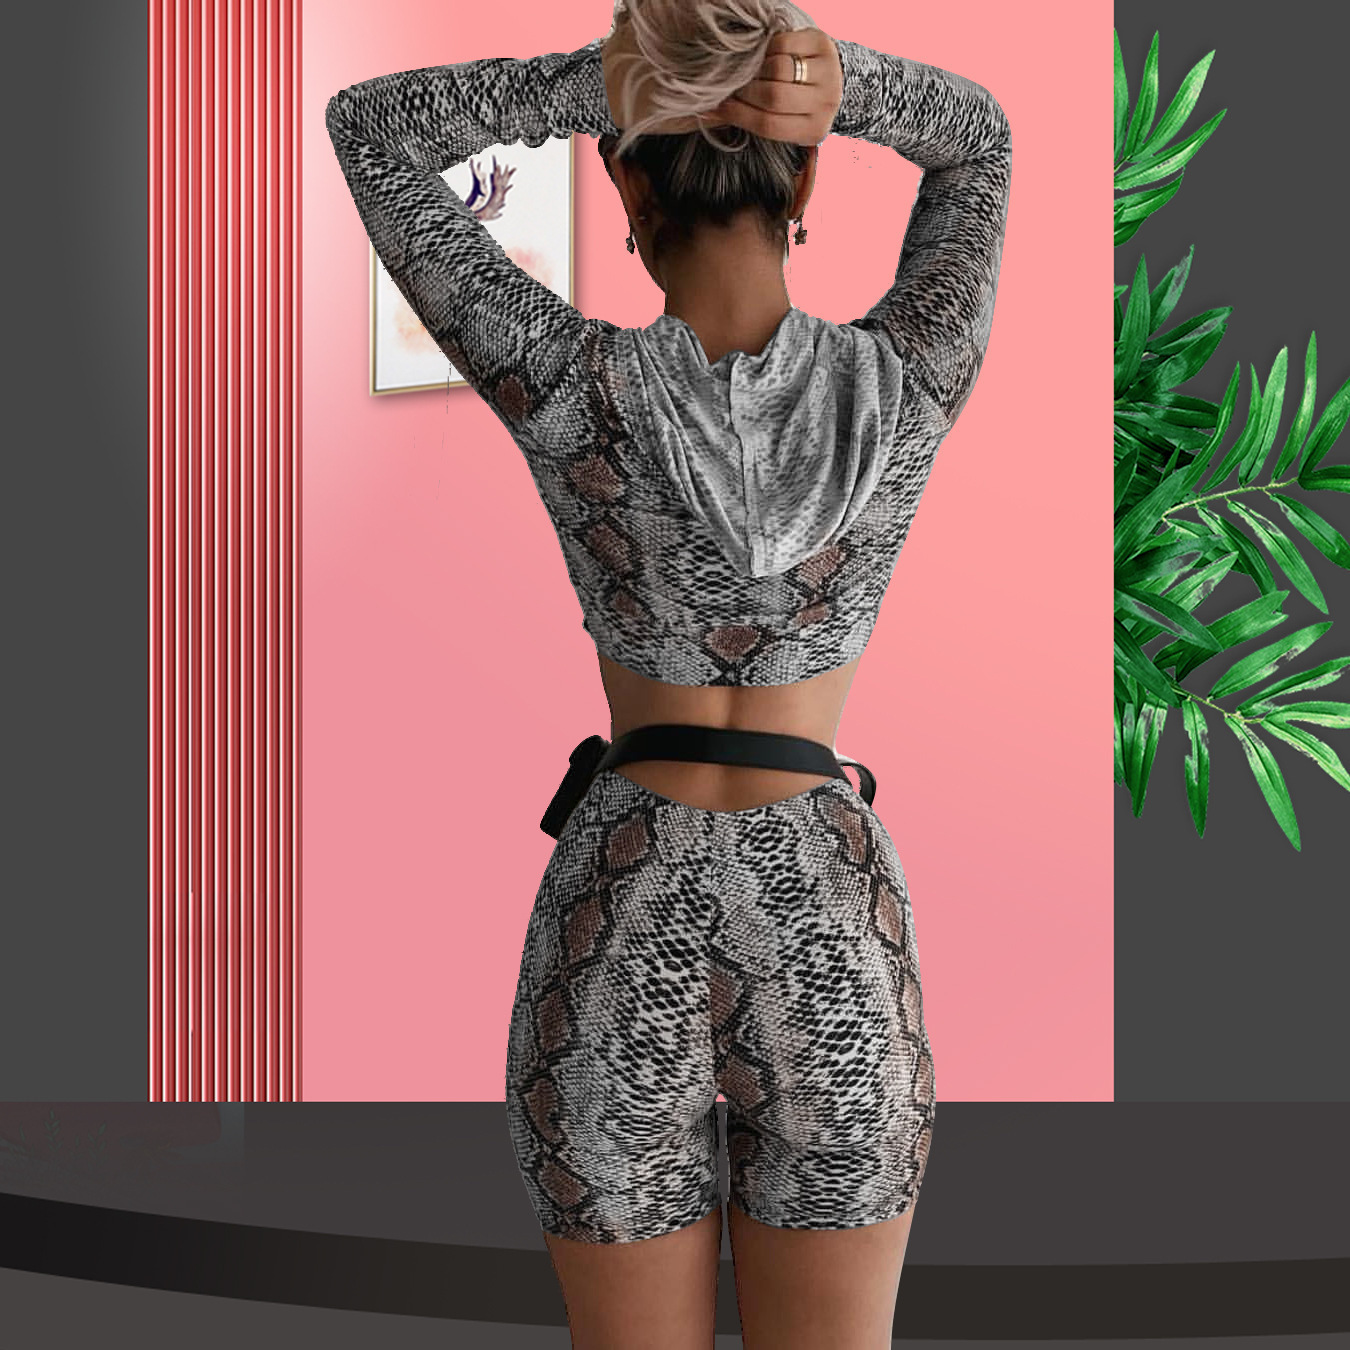 Fitness Snake Print Zipper Up Hooded Coat High Waist Biker Shorts 2019 Sexy Women Club Party Wear 2 Piece Matching Set Outfits in Women 39 s Sets from Women 39 s Clothing